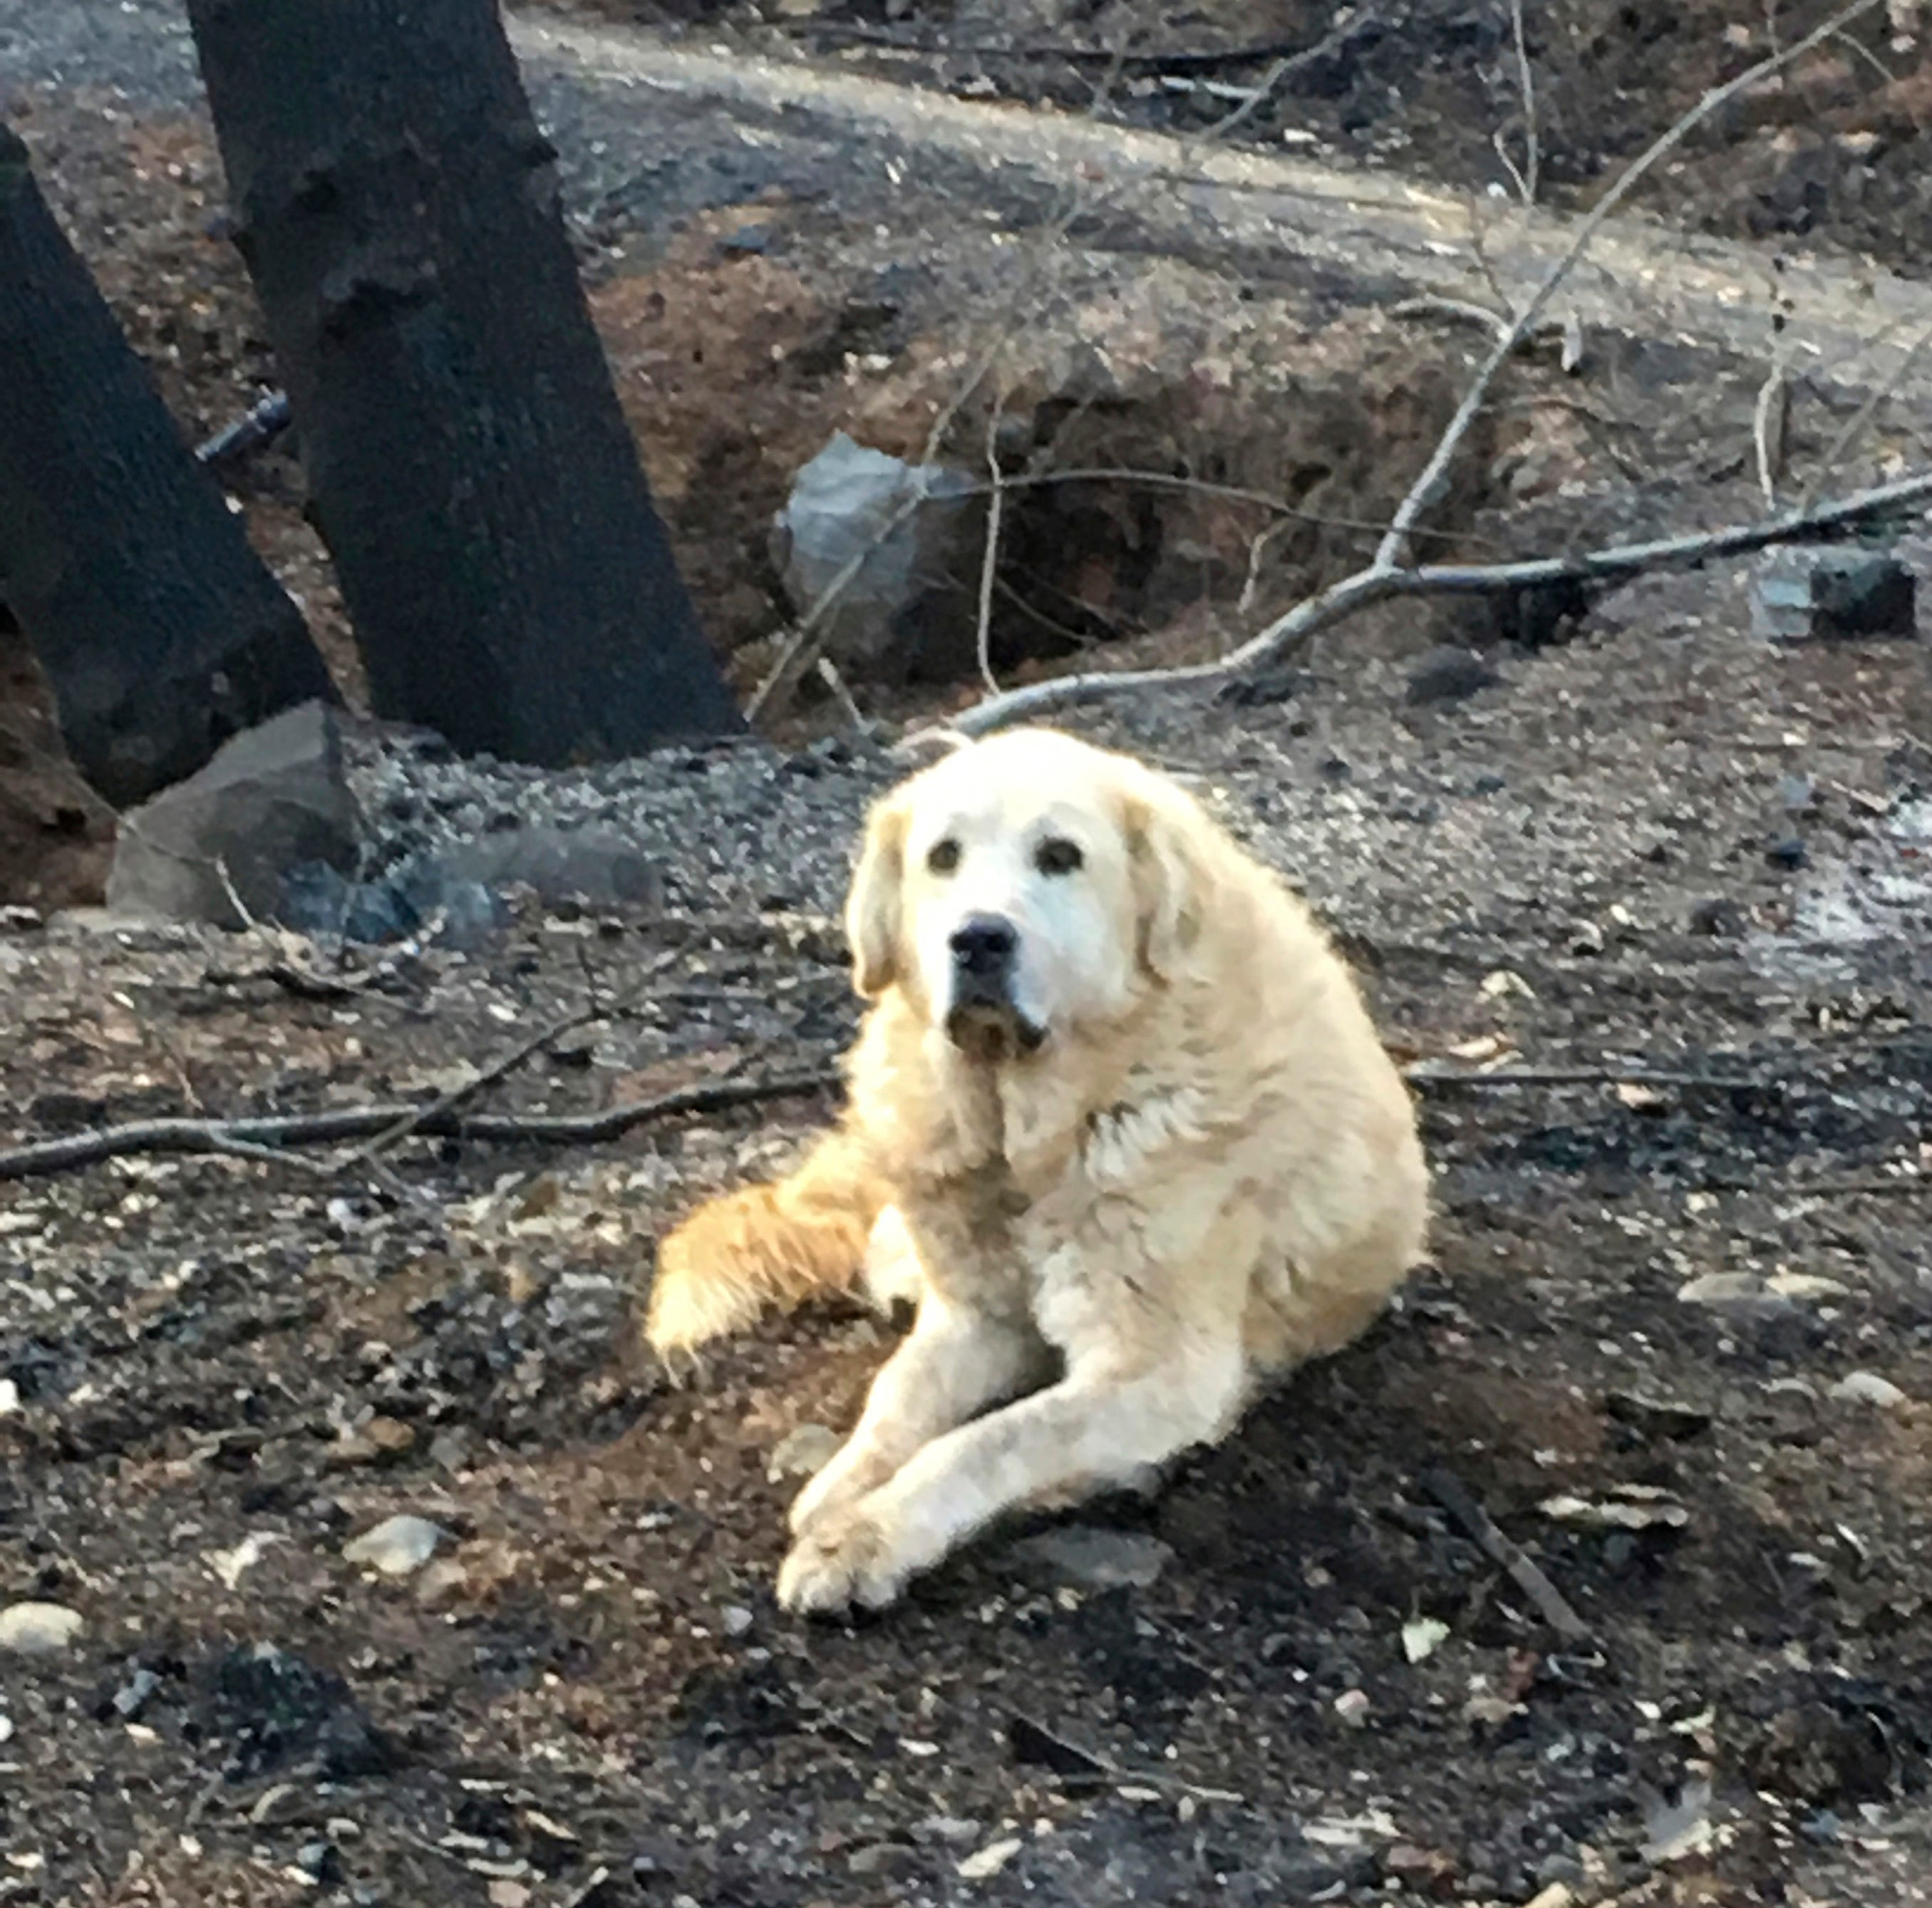 Homeowner returns one month after Camp Fire, finds her dog waiting for her at her house